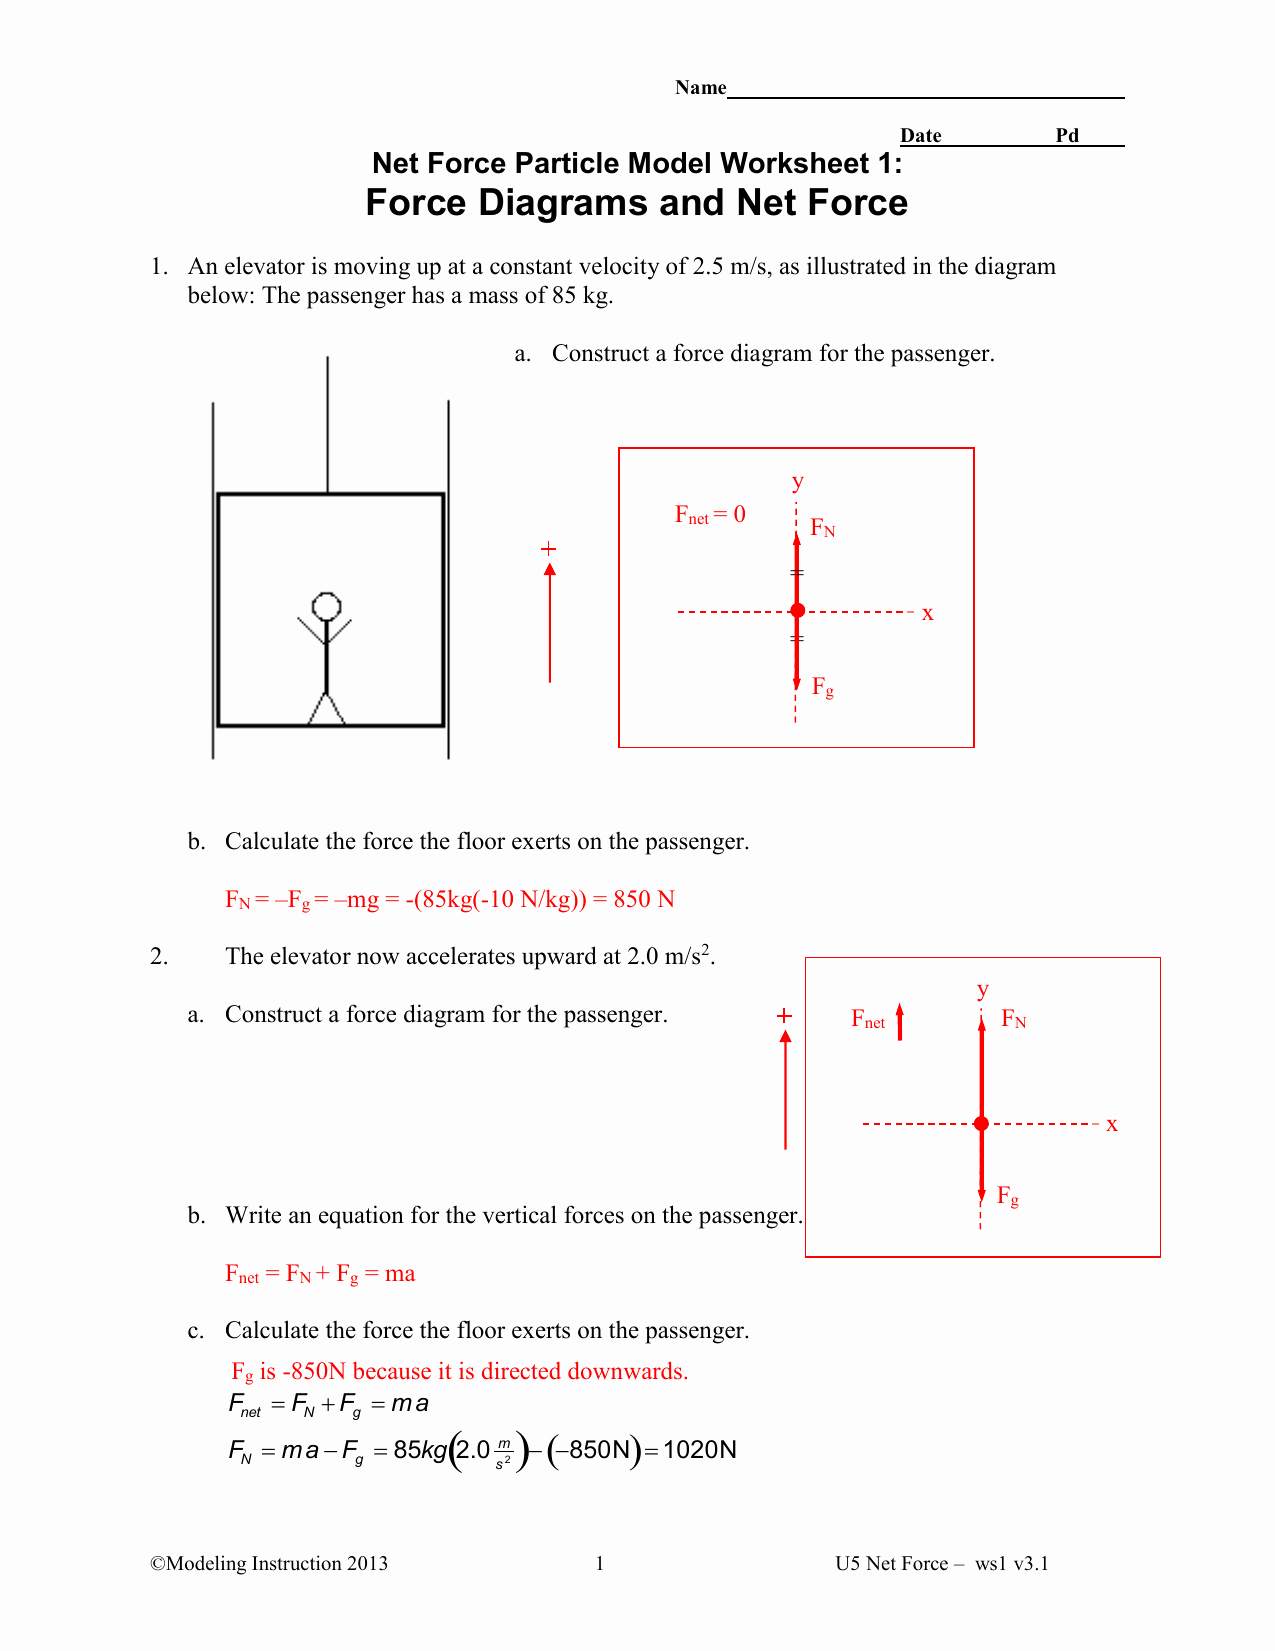 Net force Worksheet Answers Unique Net force Particle Model Worksheet 5 Newton S Second Law